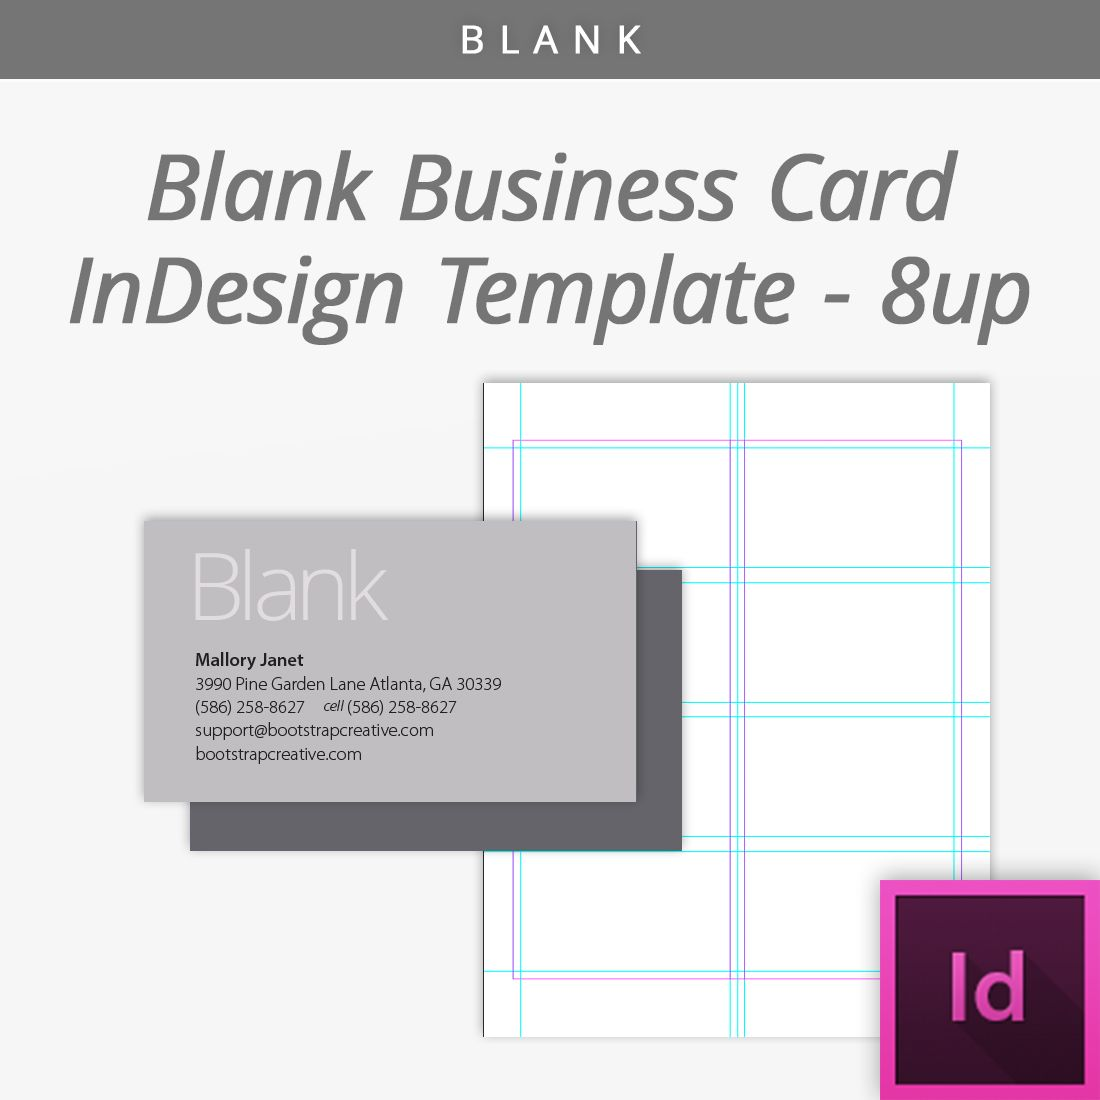 Bootstrap creative business card template word free